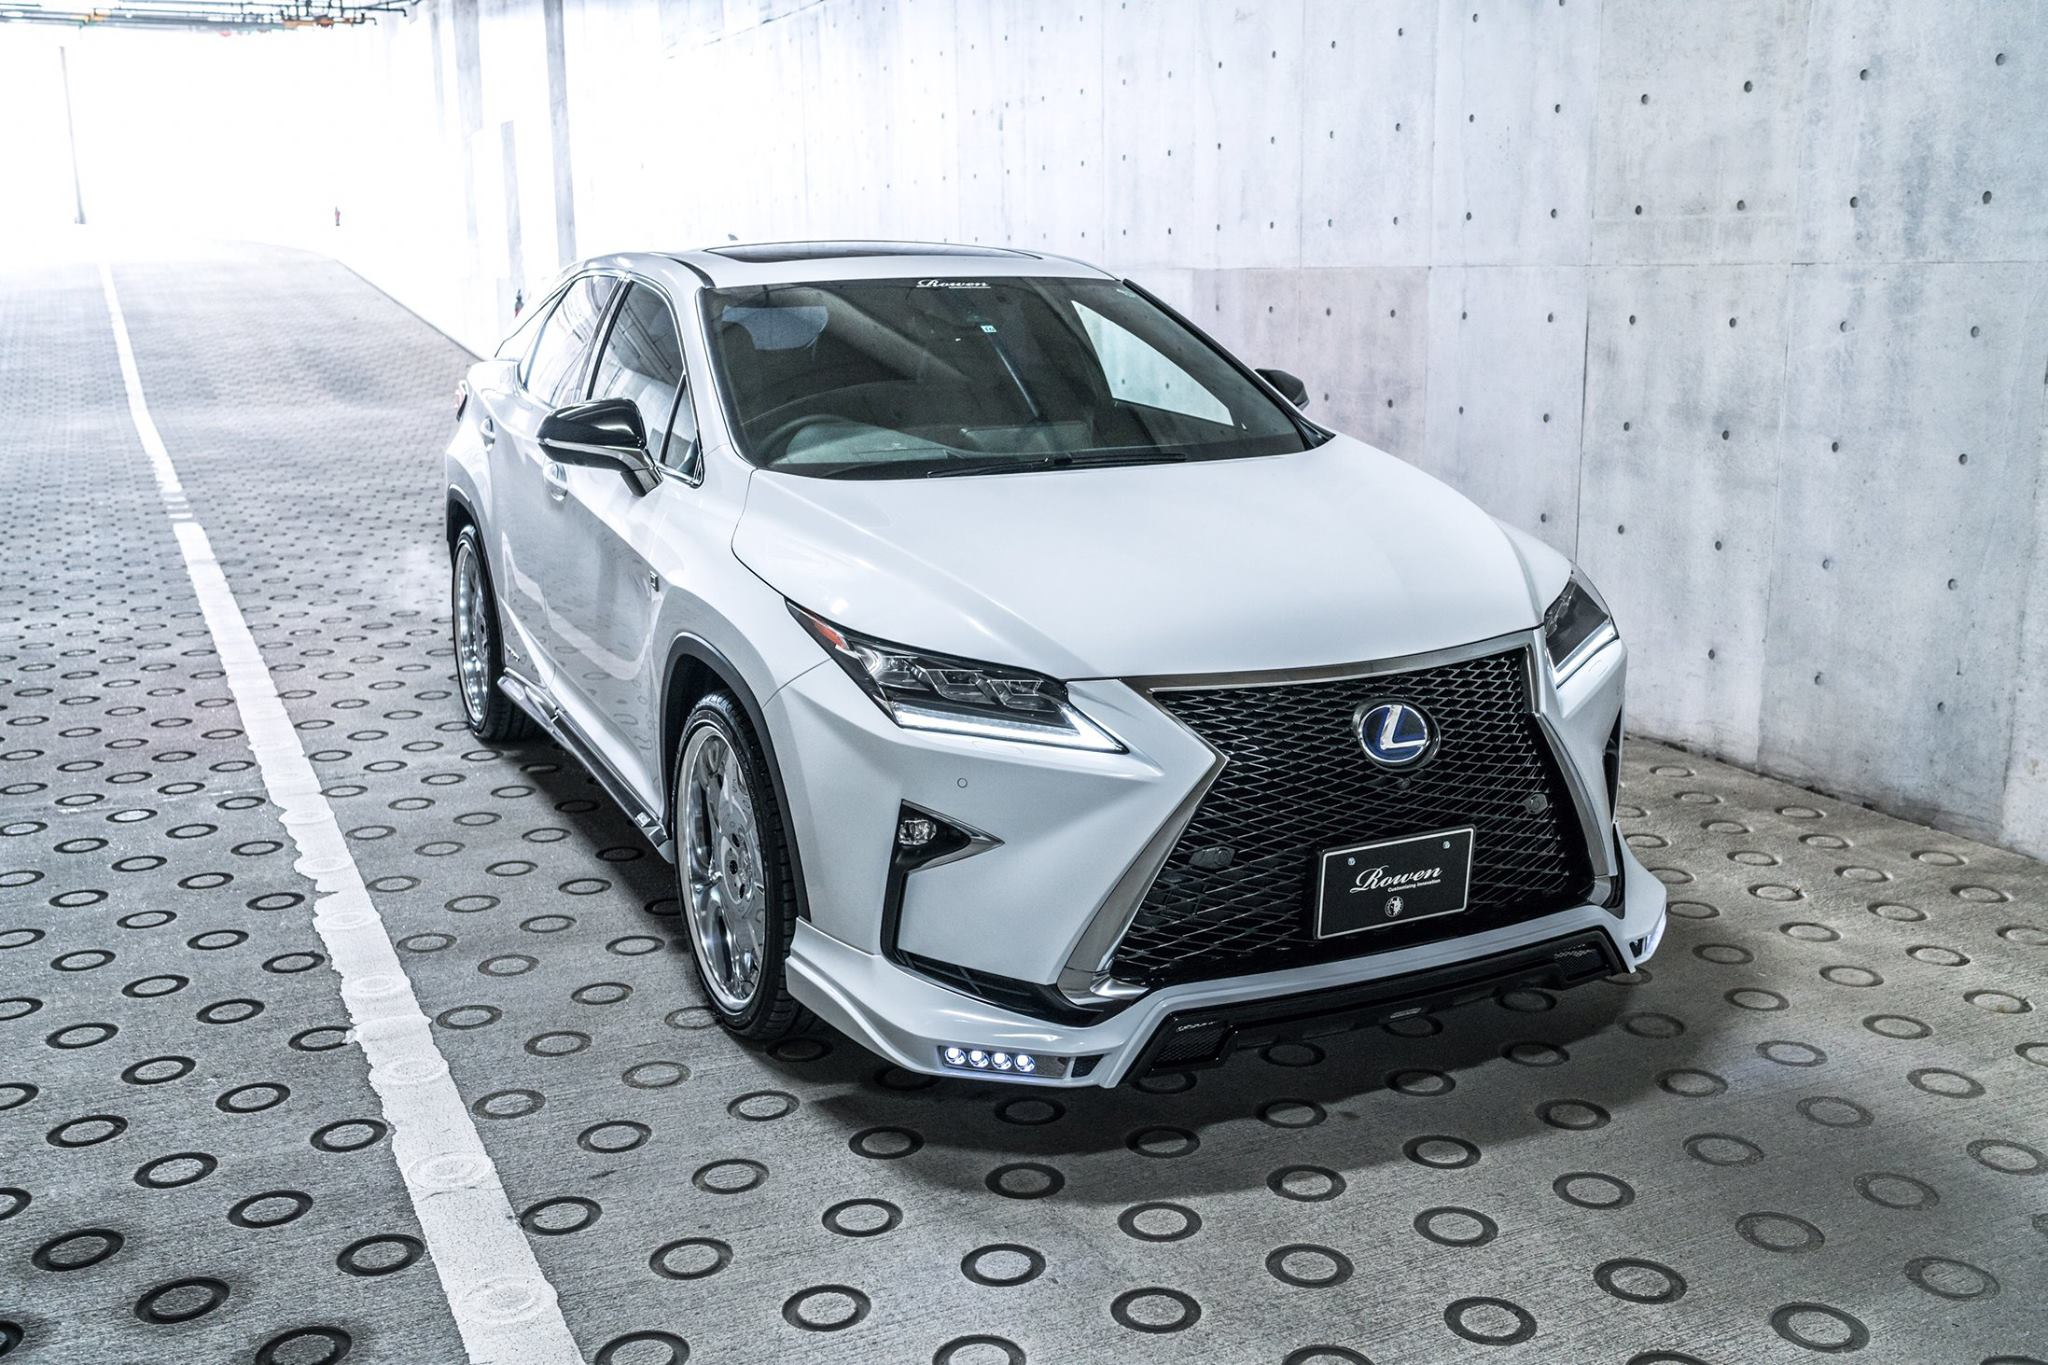 2017 Lexus Rx 450h >> Lexus RX F-Sport With Rowen Body Kit Has Quad Exhaust - autoevolution